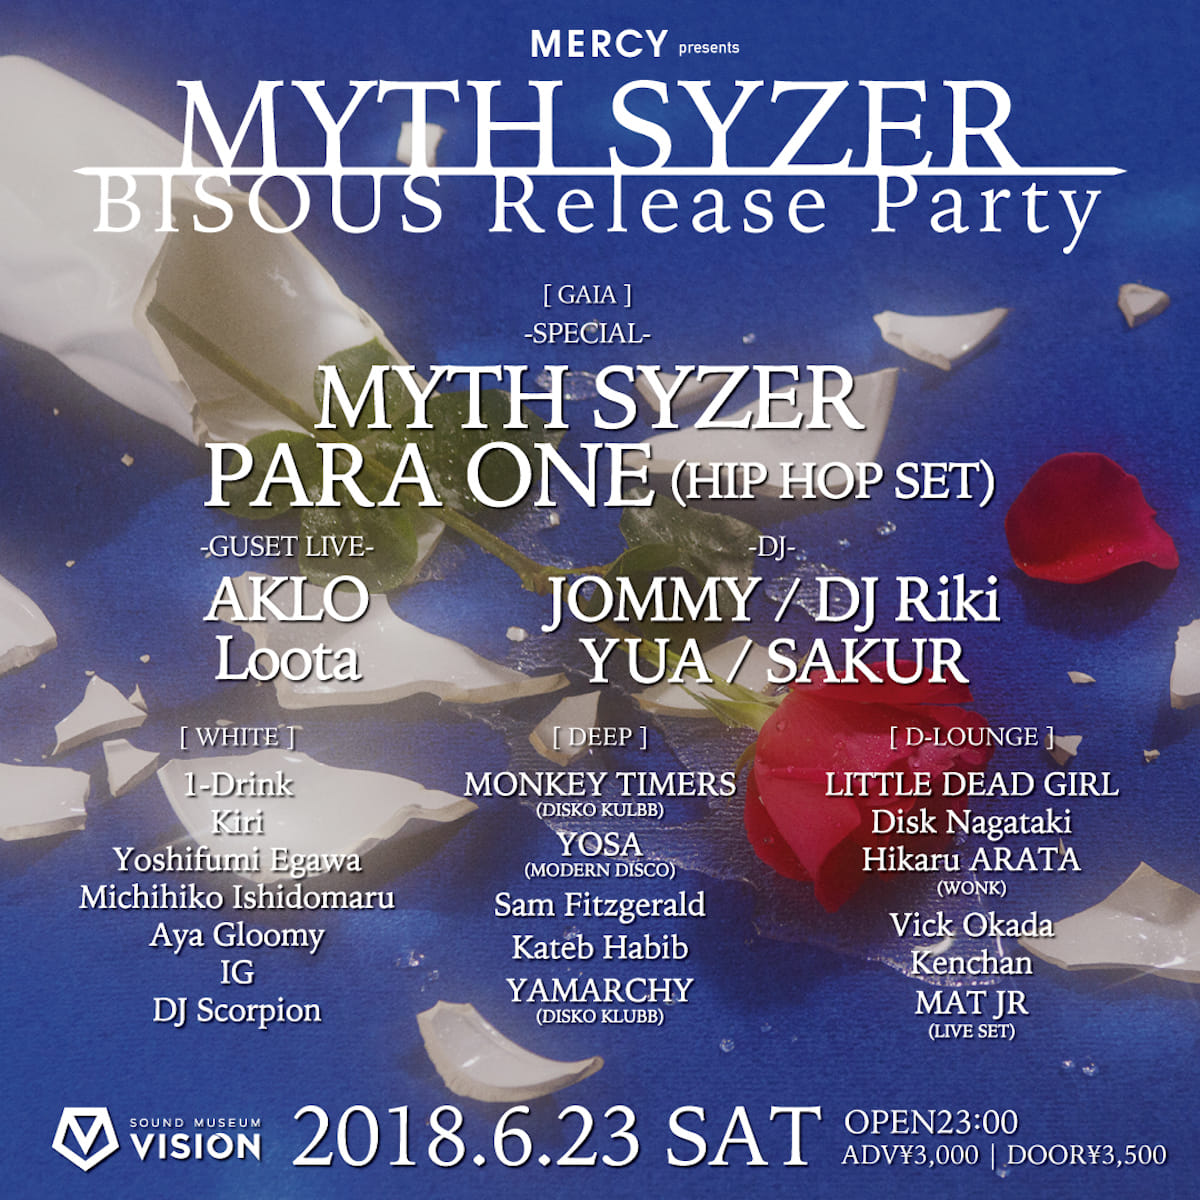 MERCY feat MYTH SYZER BISOUS Release Party